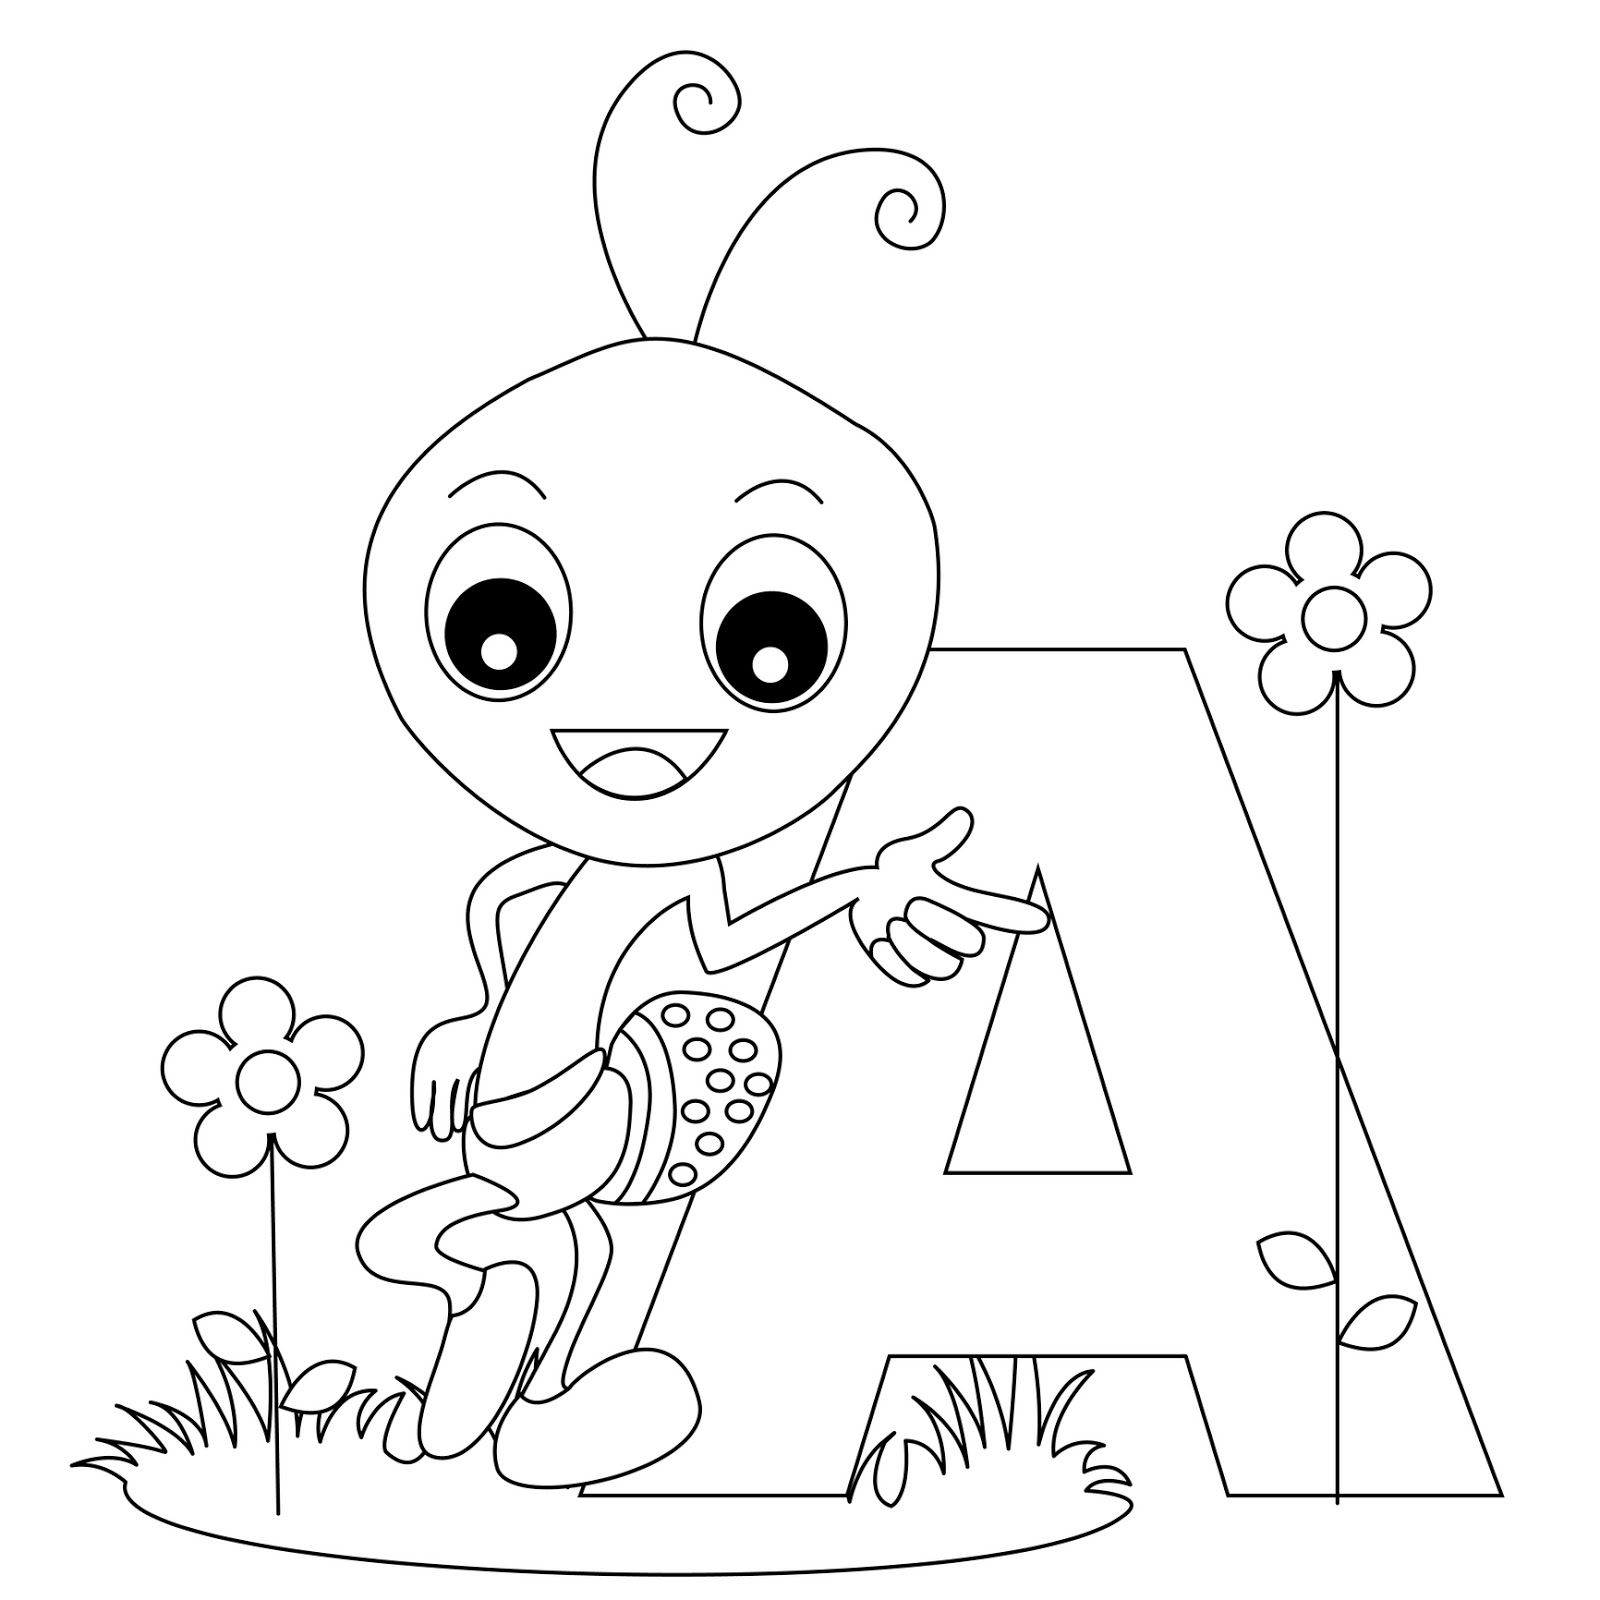 coloring alphabet pages simple alphabet 14 alphabet coloring pages for kids to pages alphabet coloring